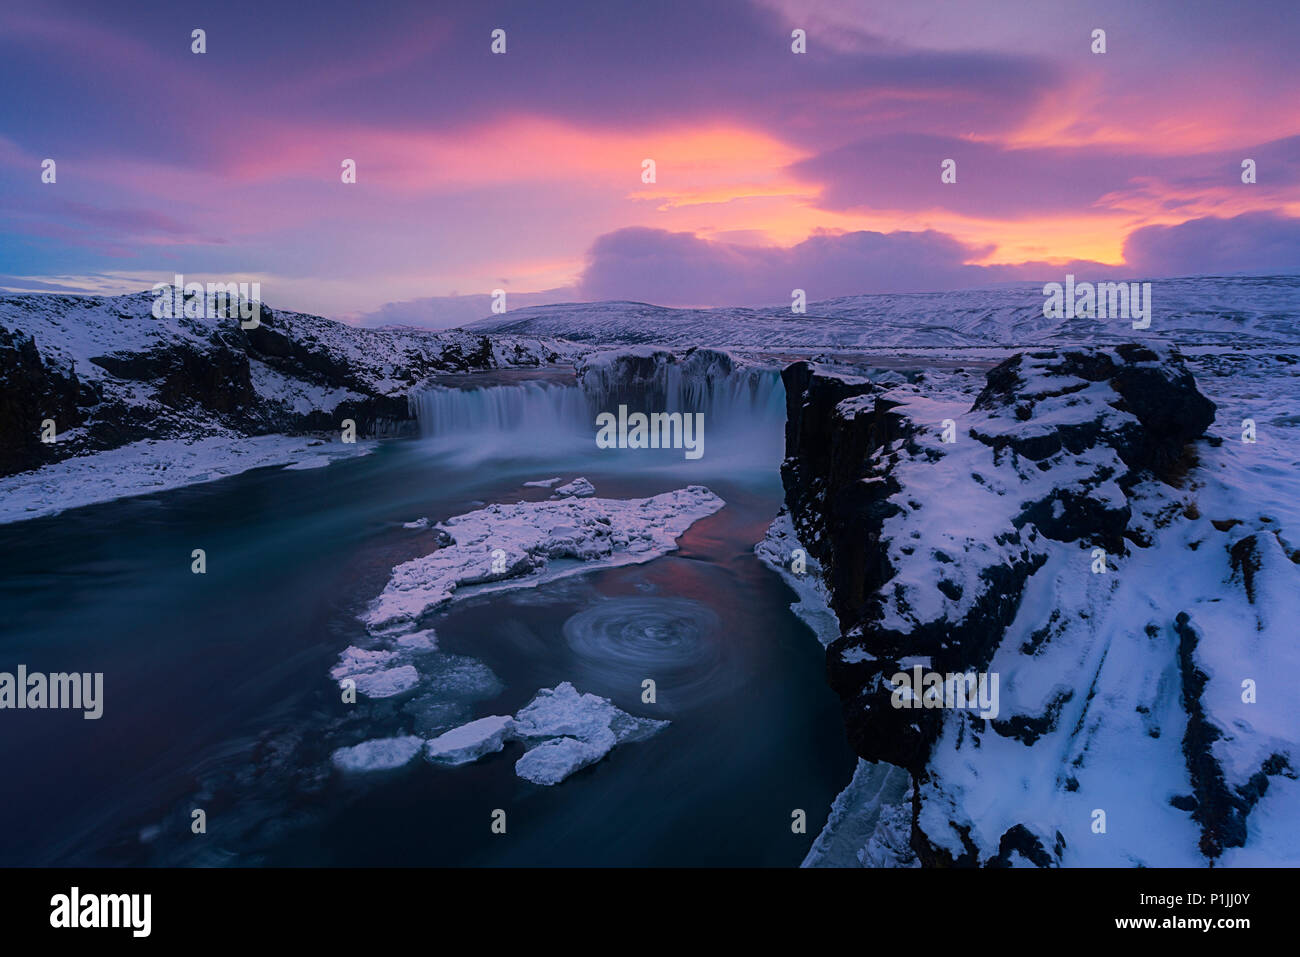 Sunset over Godafoss waterfall at ice and snow in winter, highlands, Iceland - Stock Image